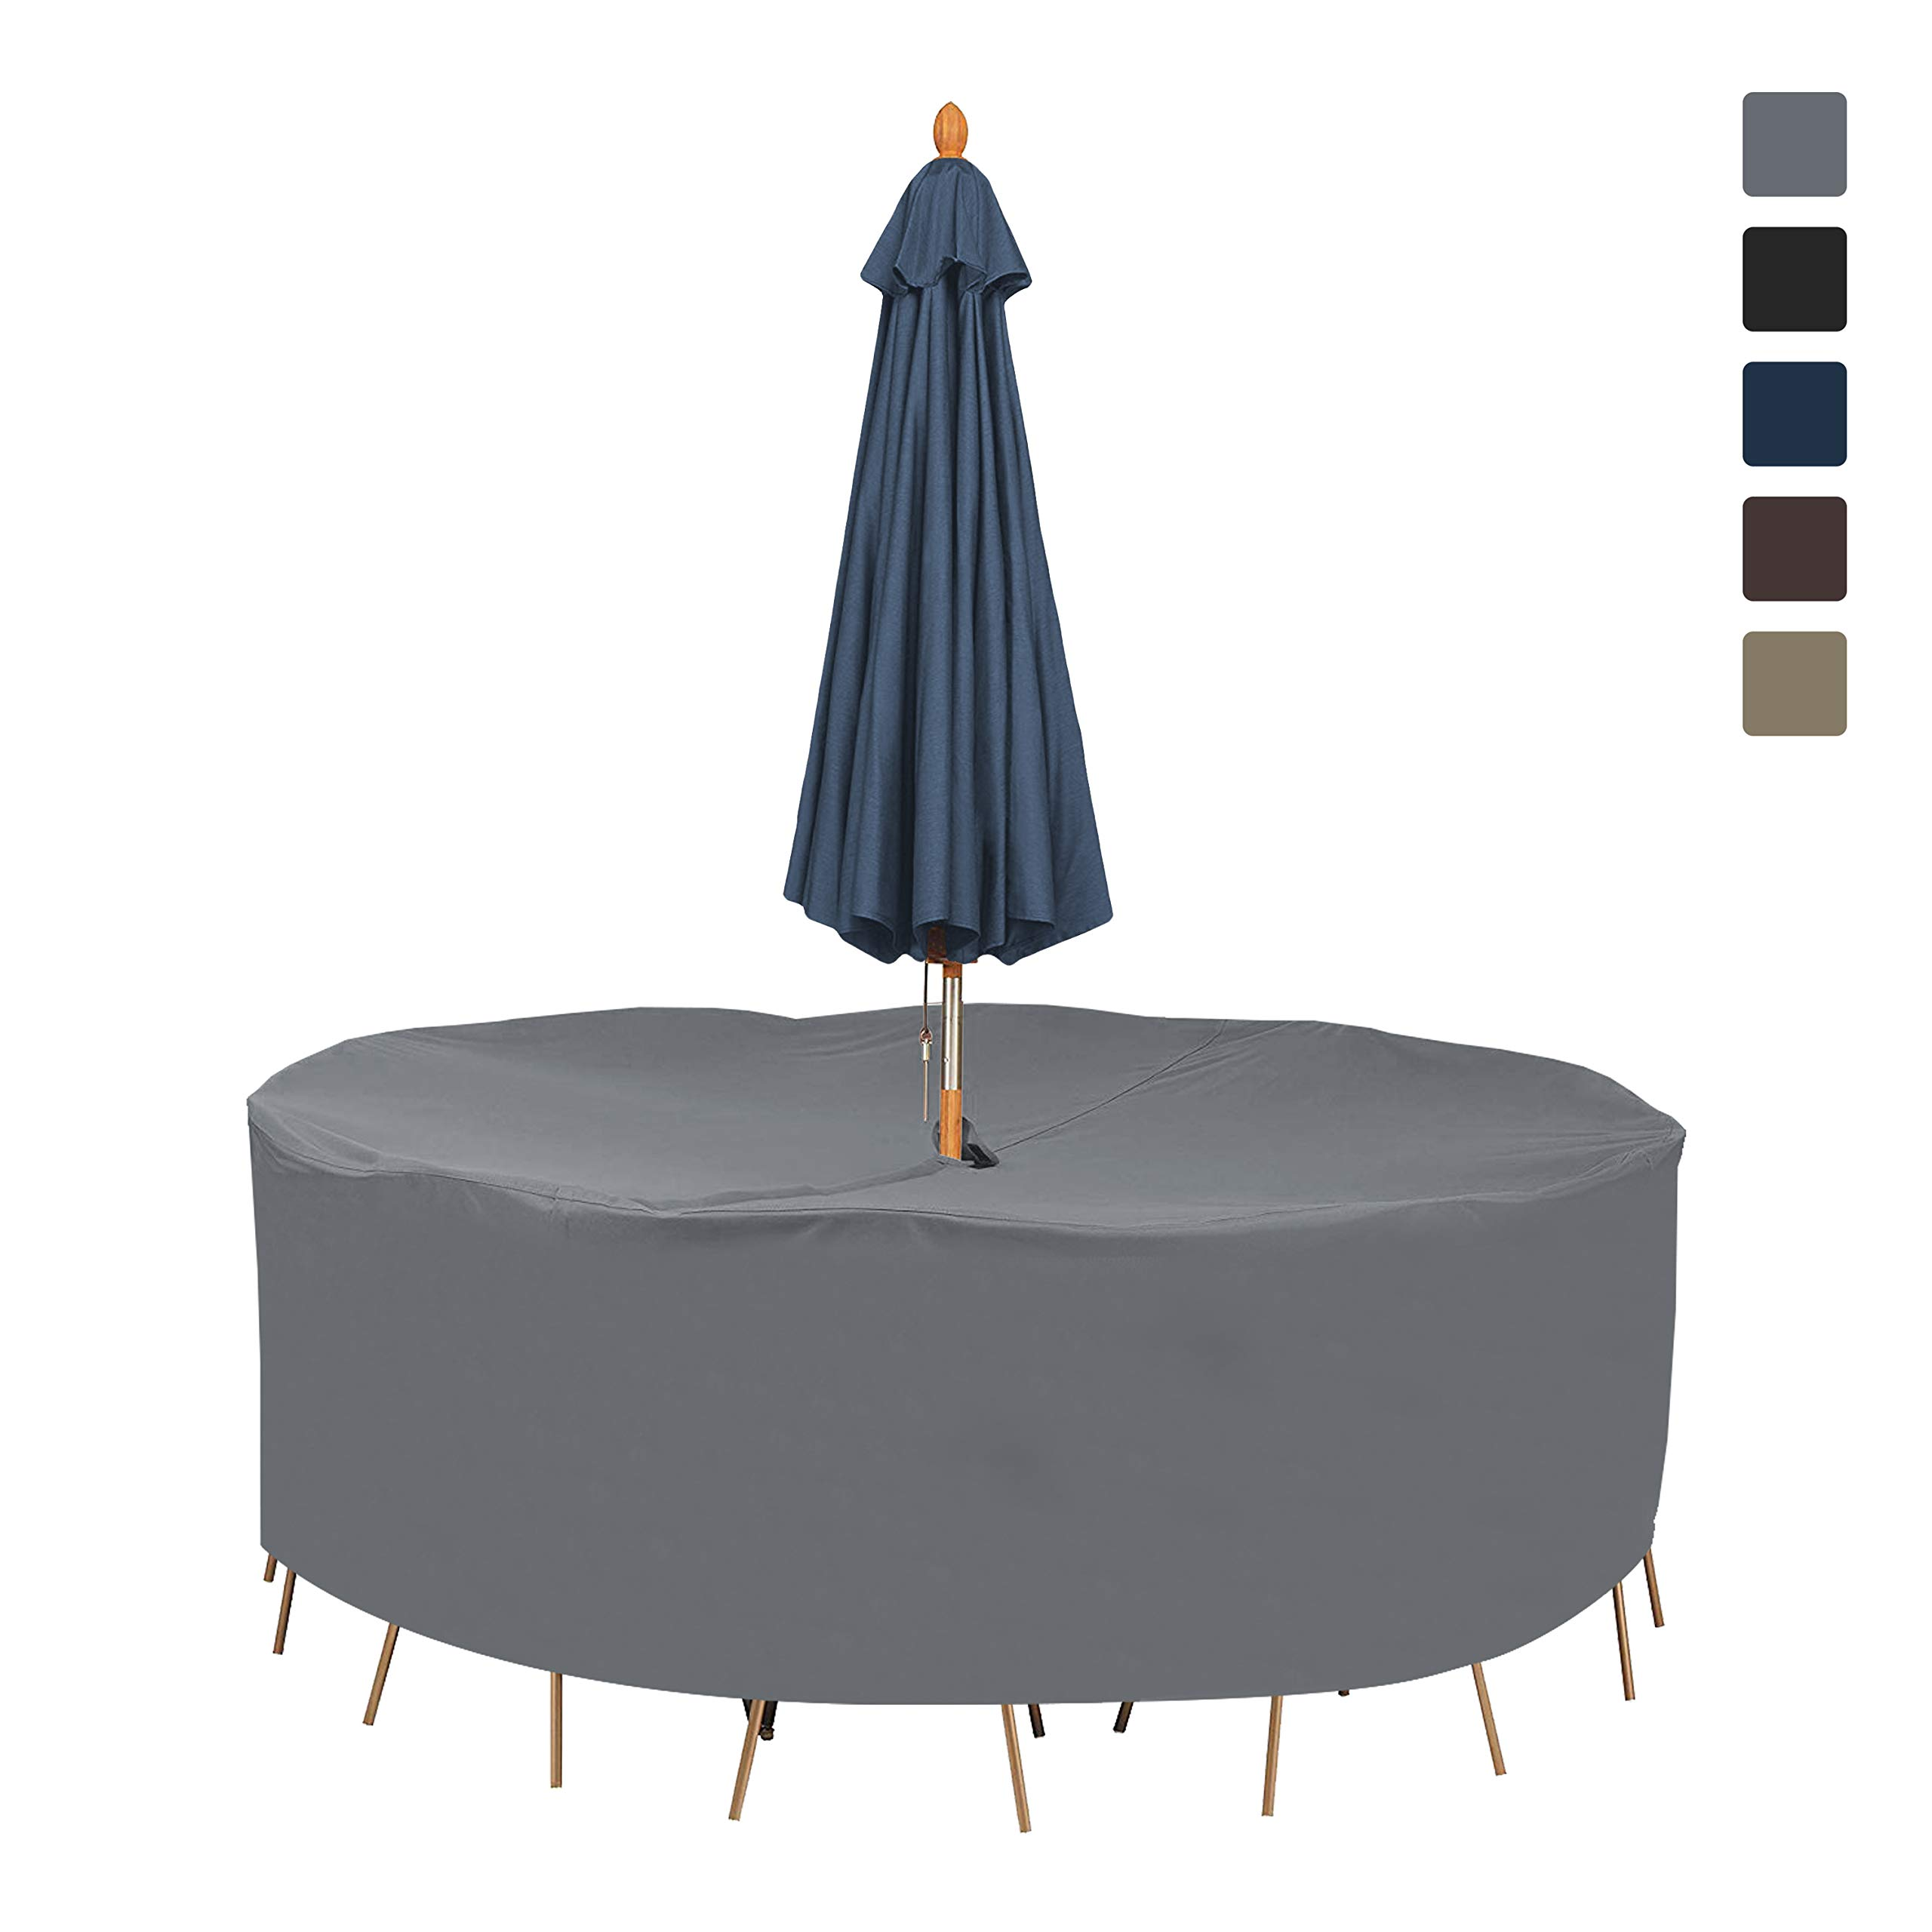 Patio Round Table & Chair Set Cover with Umbrella Hole 12 Oz Waterproof - 100% UV & Weather Resistant Outdoor Table Cover with Air Pocket and Drawstring for Snug Fit (94'' Dia x 30'' H, Grey)